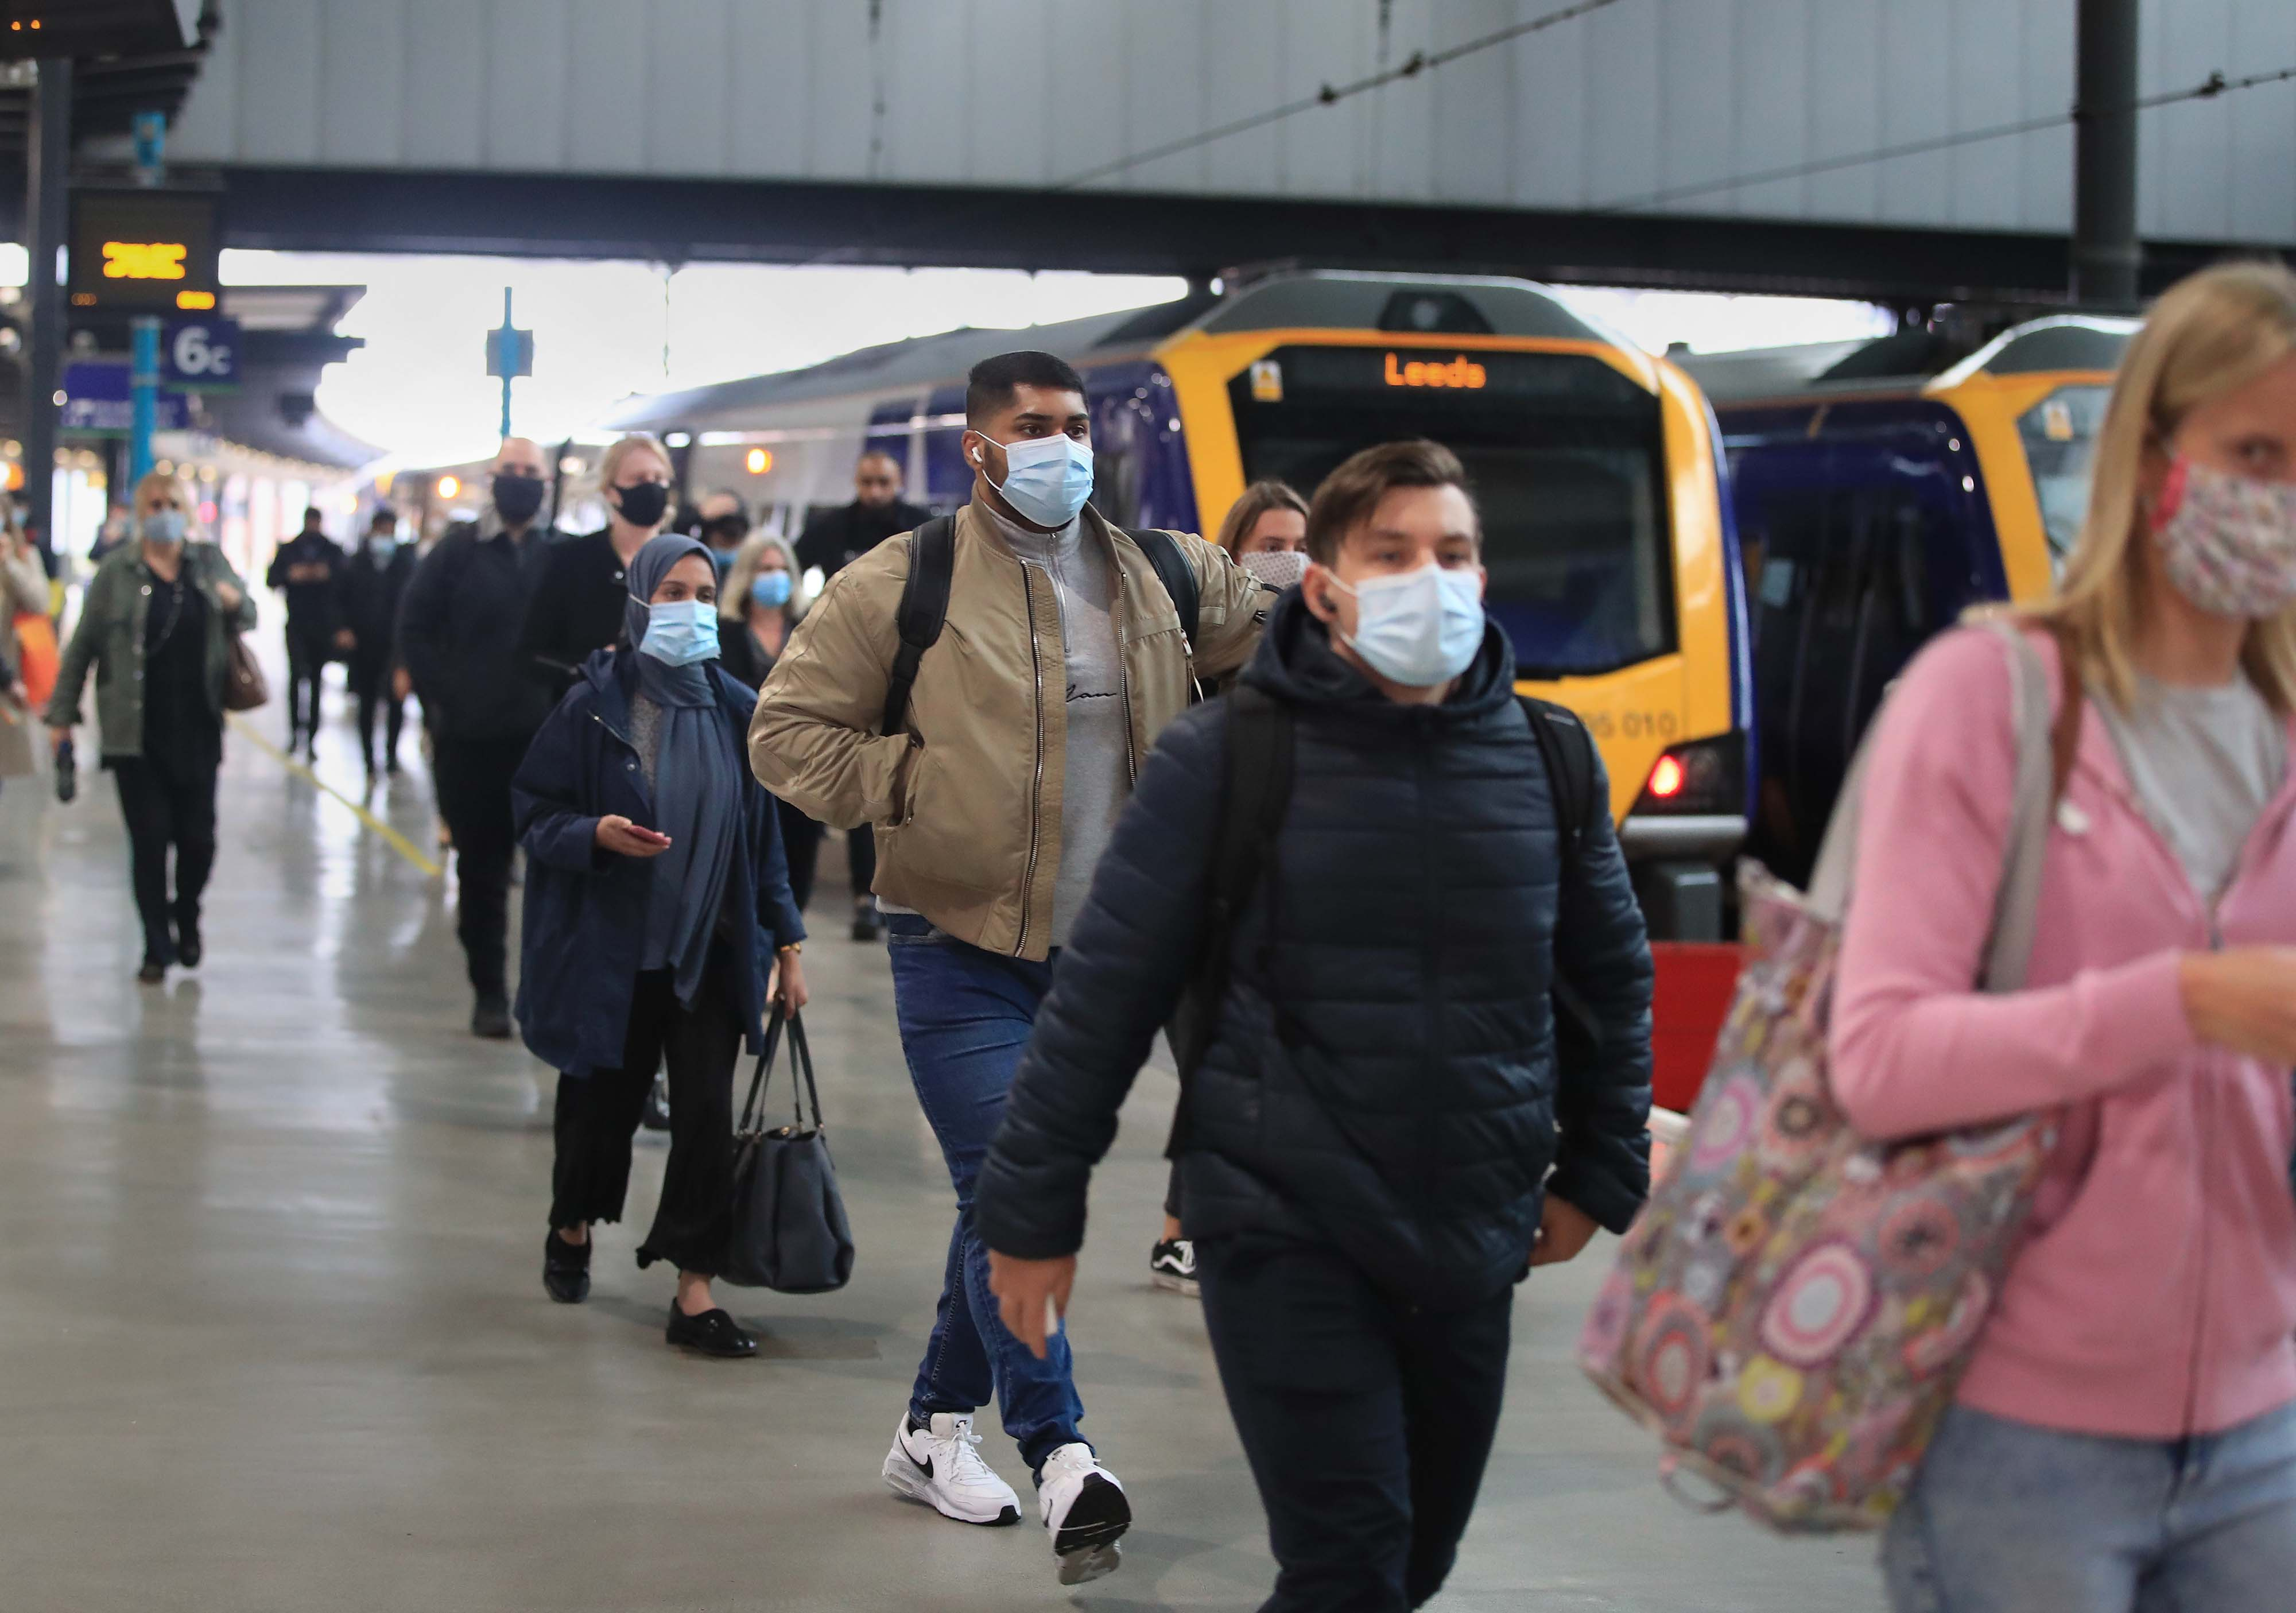 Commuters arriving at Leeds railway station. Train services will be ramped up from today as schools in England and Wales reopen and workers are encouraged to return to offices. (Photo by Danny Lawson/PA Images via Getty Images)